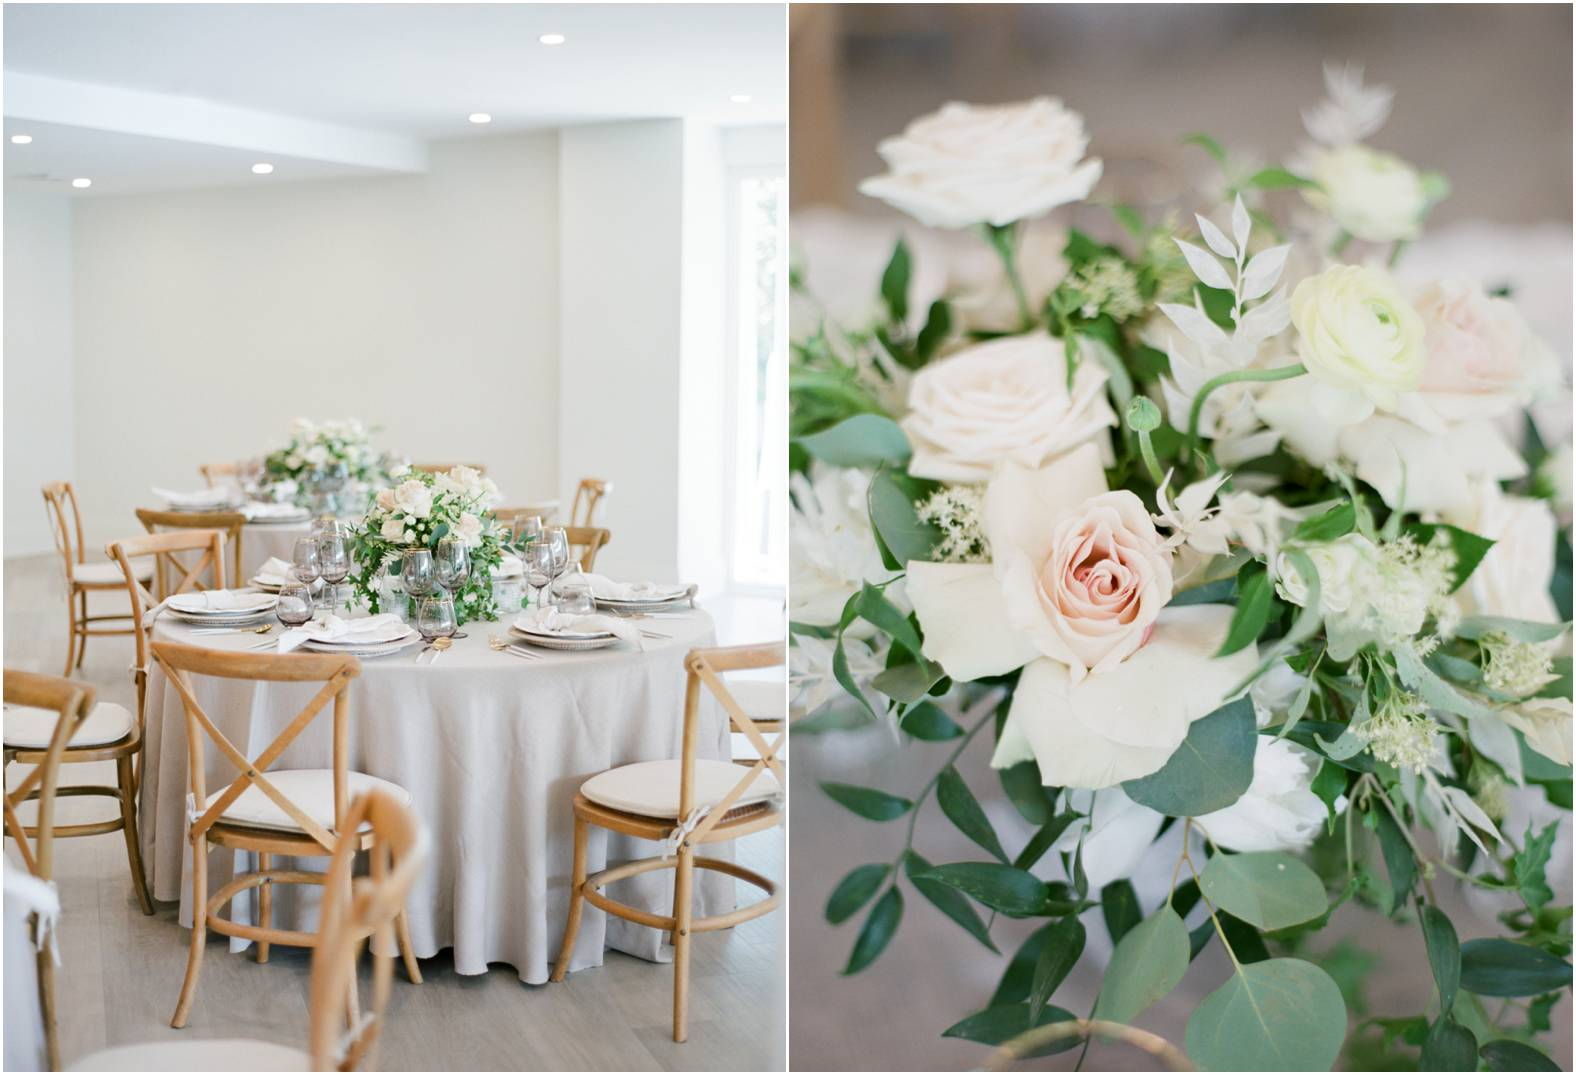 Classic neutrals and natural wood theme wedding at The Gate House in Niagara on the Lake